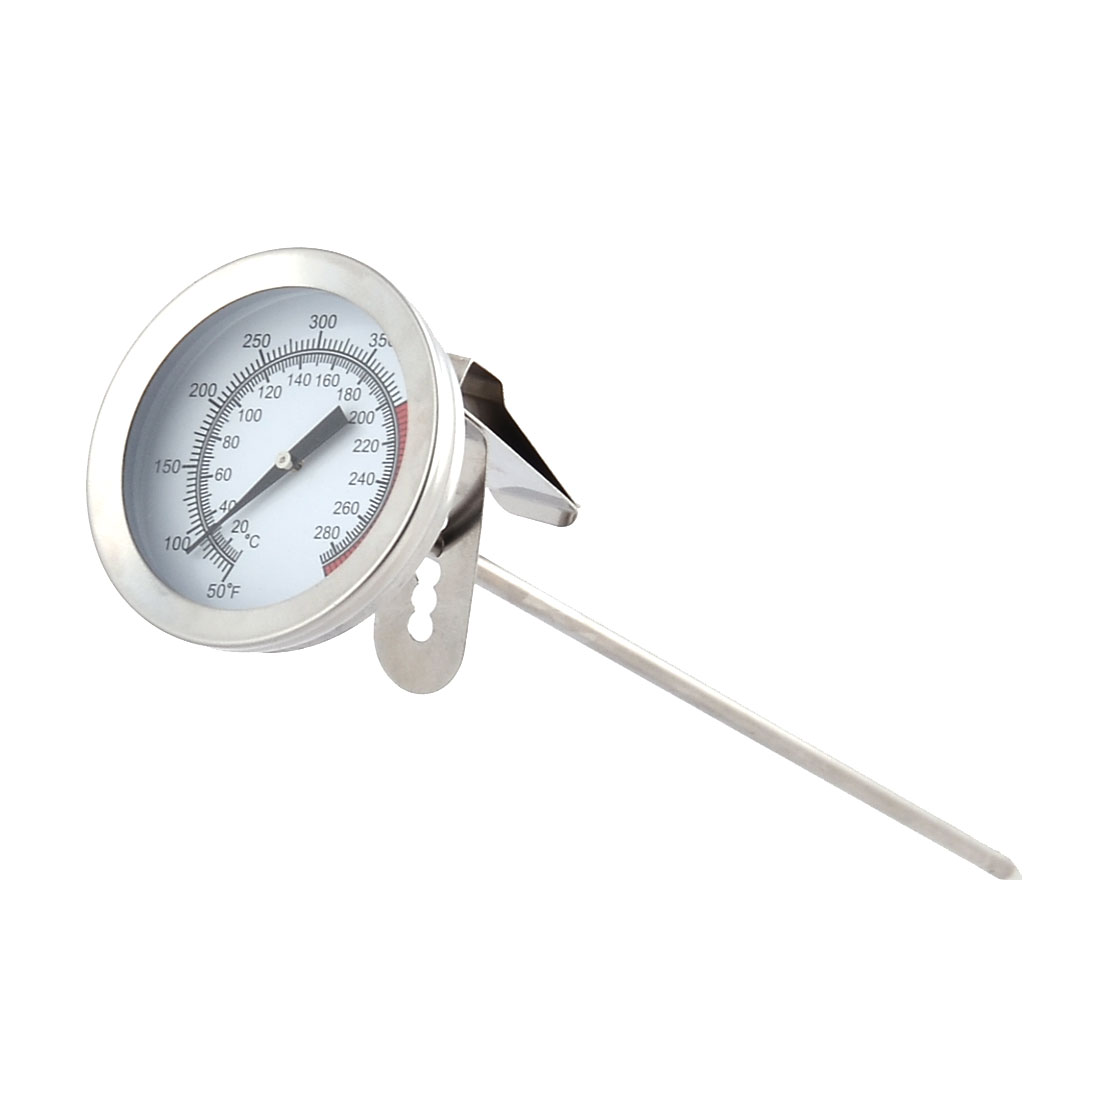 Kitchen Stainless Steel Coffee Tea Milk Frothing Thermometer Silver Tone White